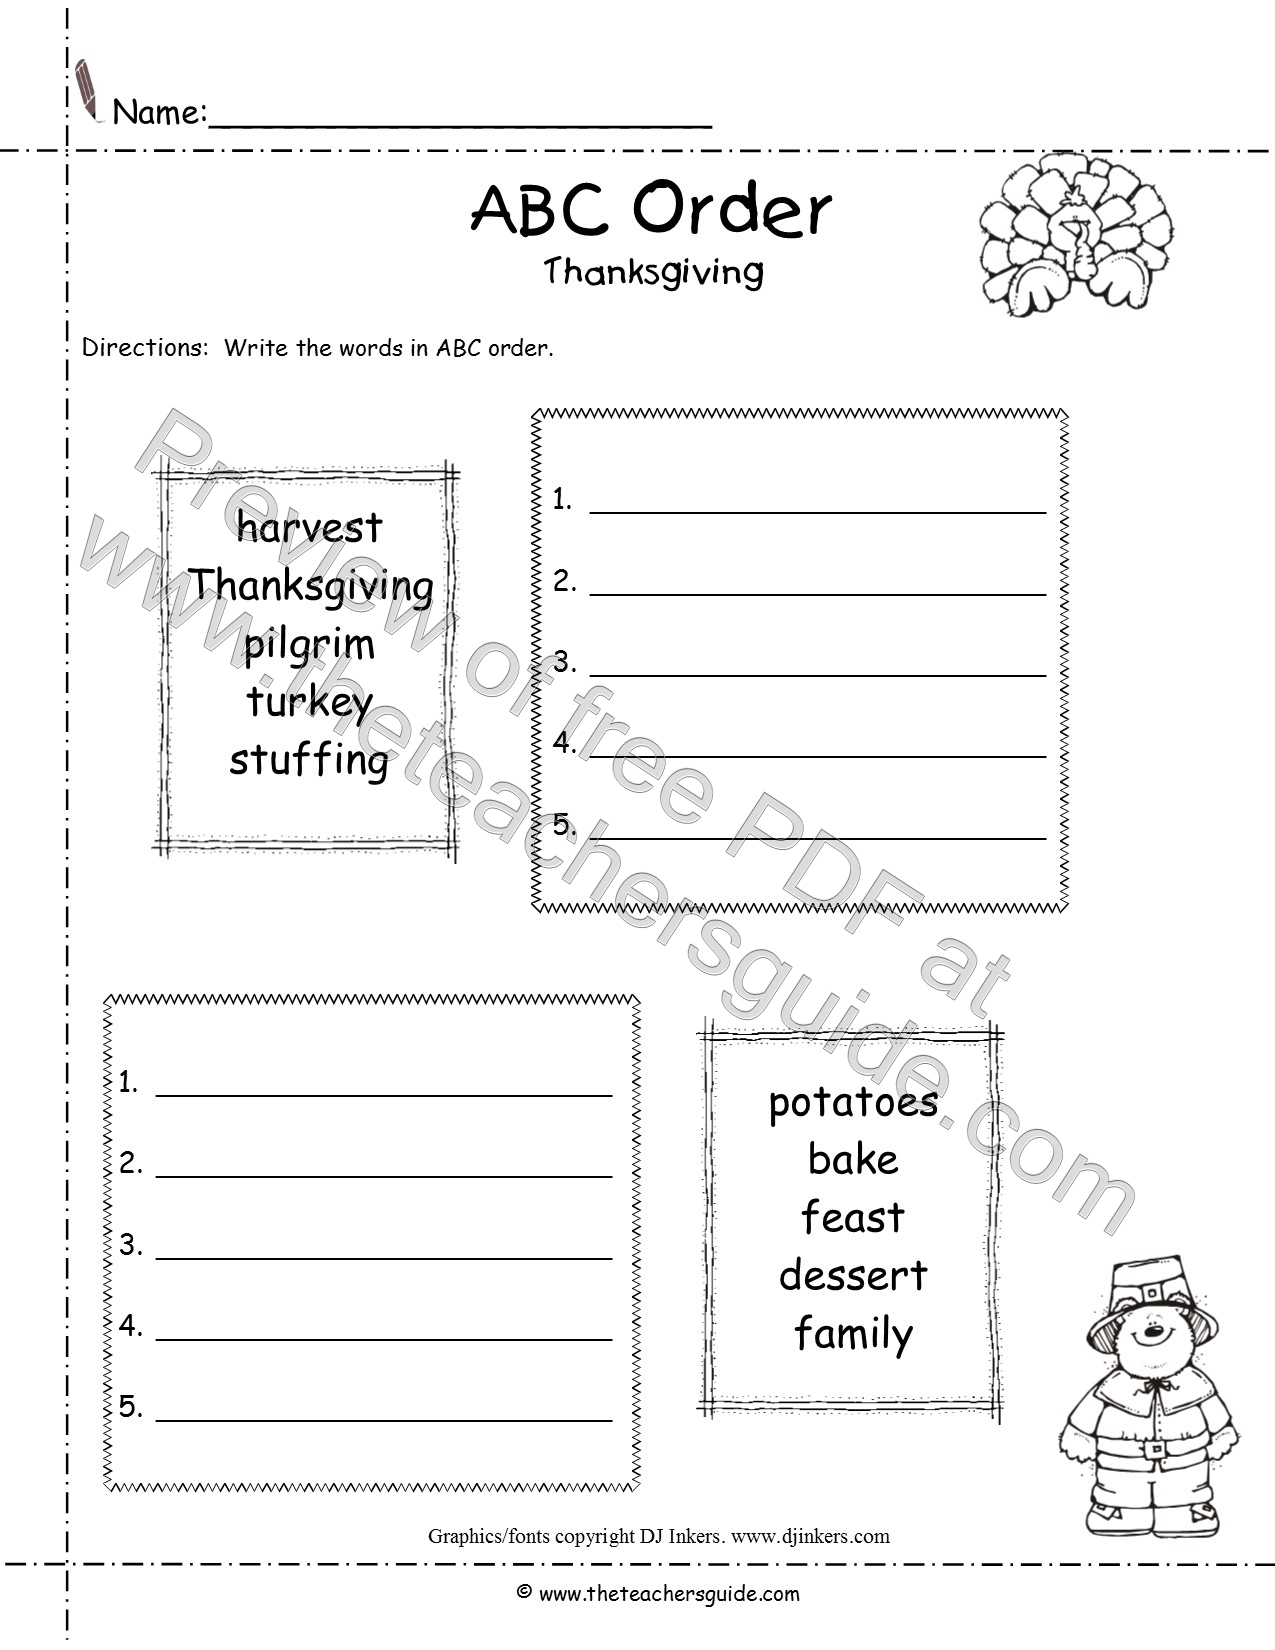 Thanksgiving Lesson Plans, Themes, Printouts, Crafts